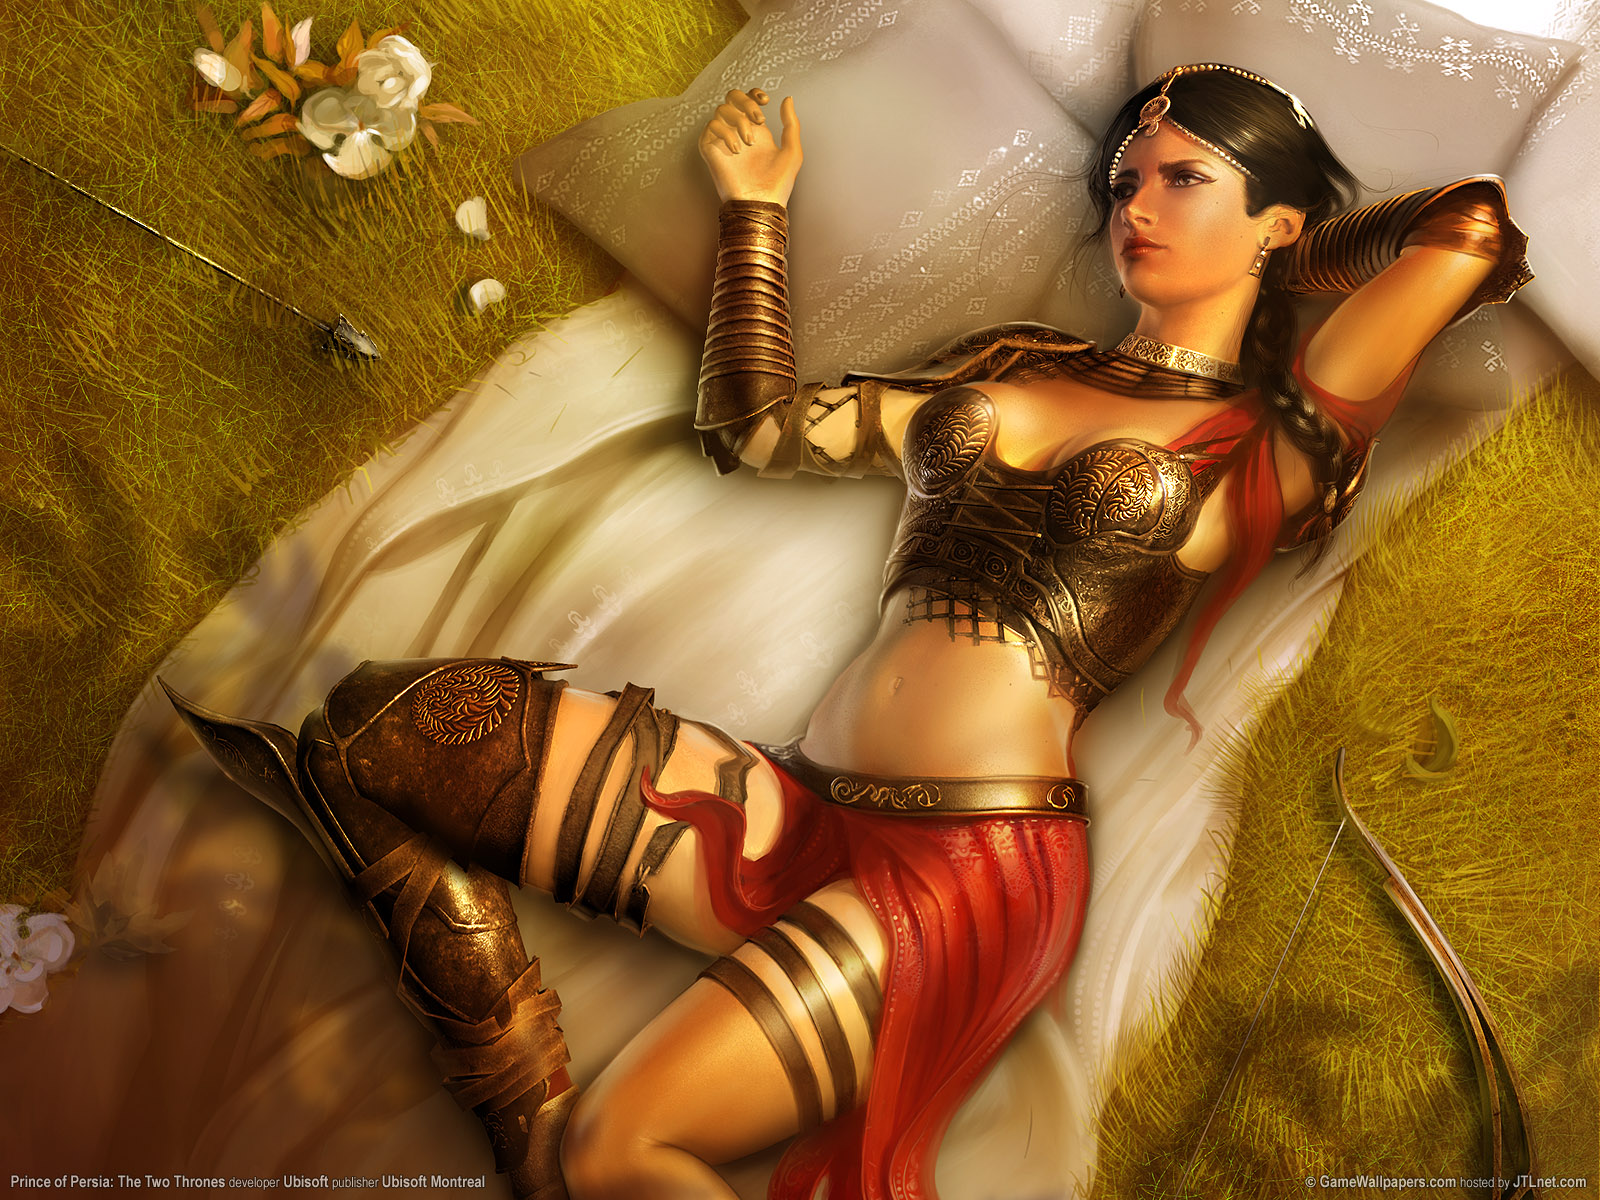 13.jpg - Prince of Persia: The Two Thrones